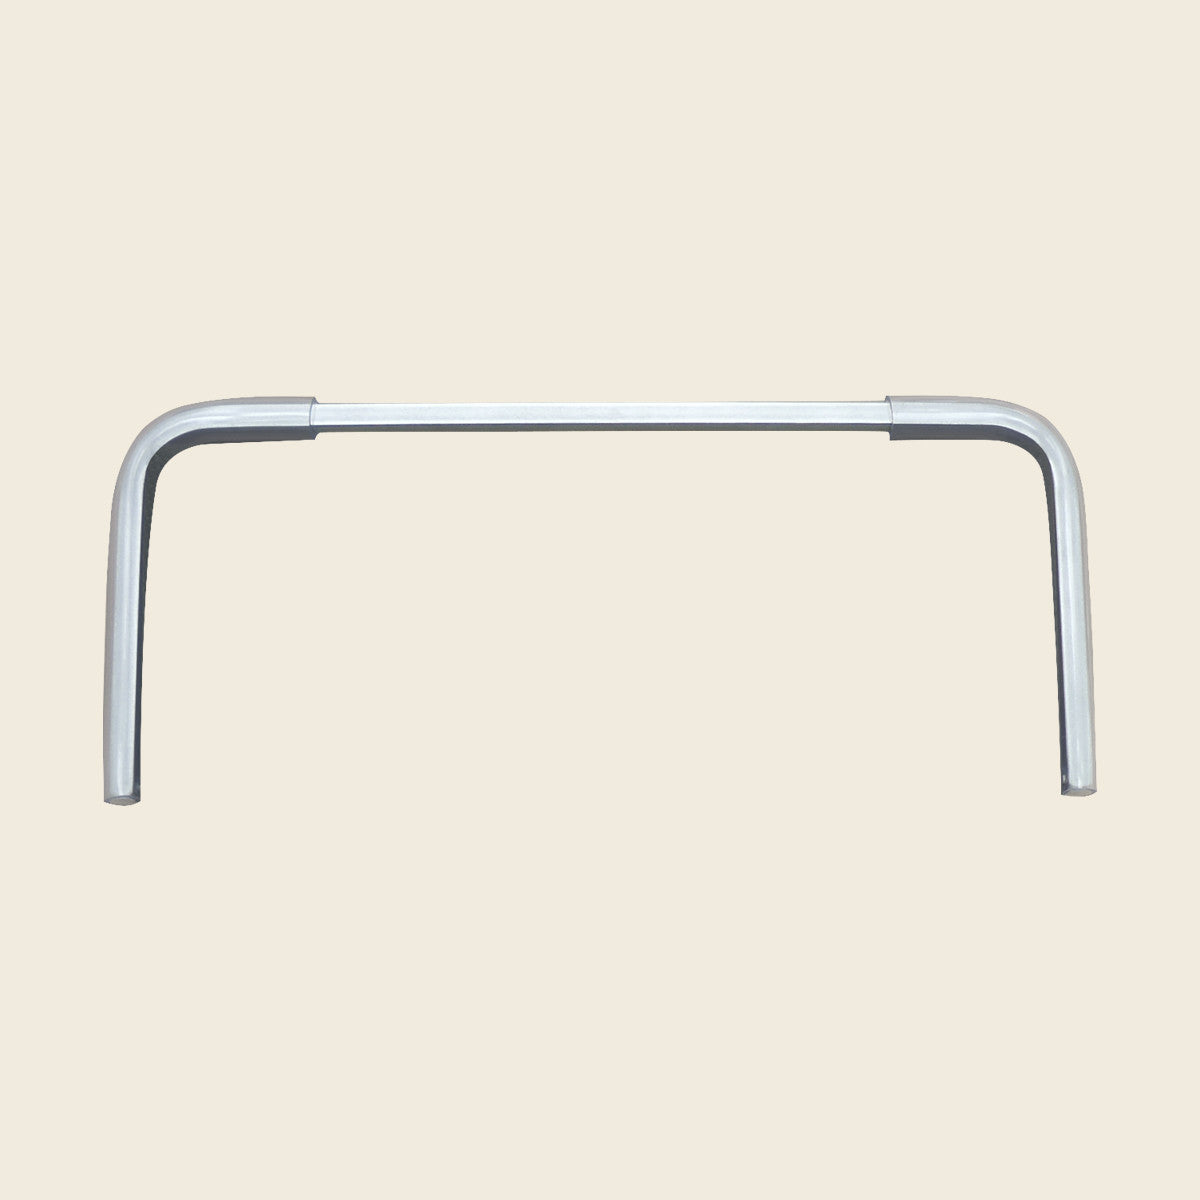 GRATZ PILATES REPLACEMENT FOOT BAR SUPPORT